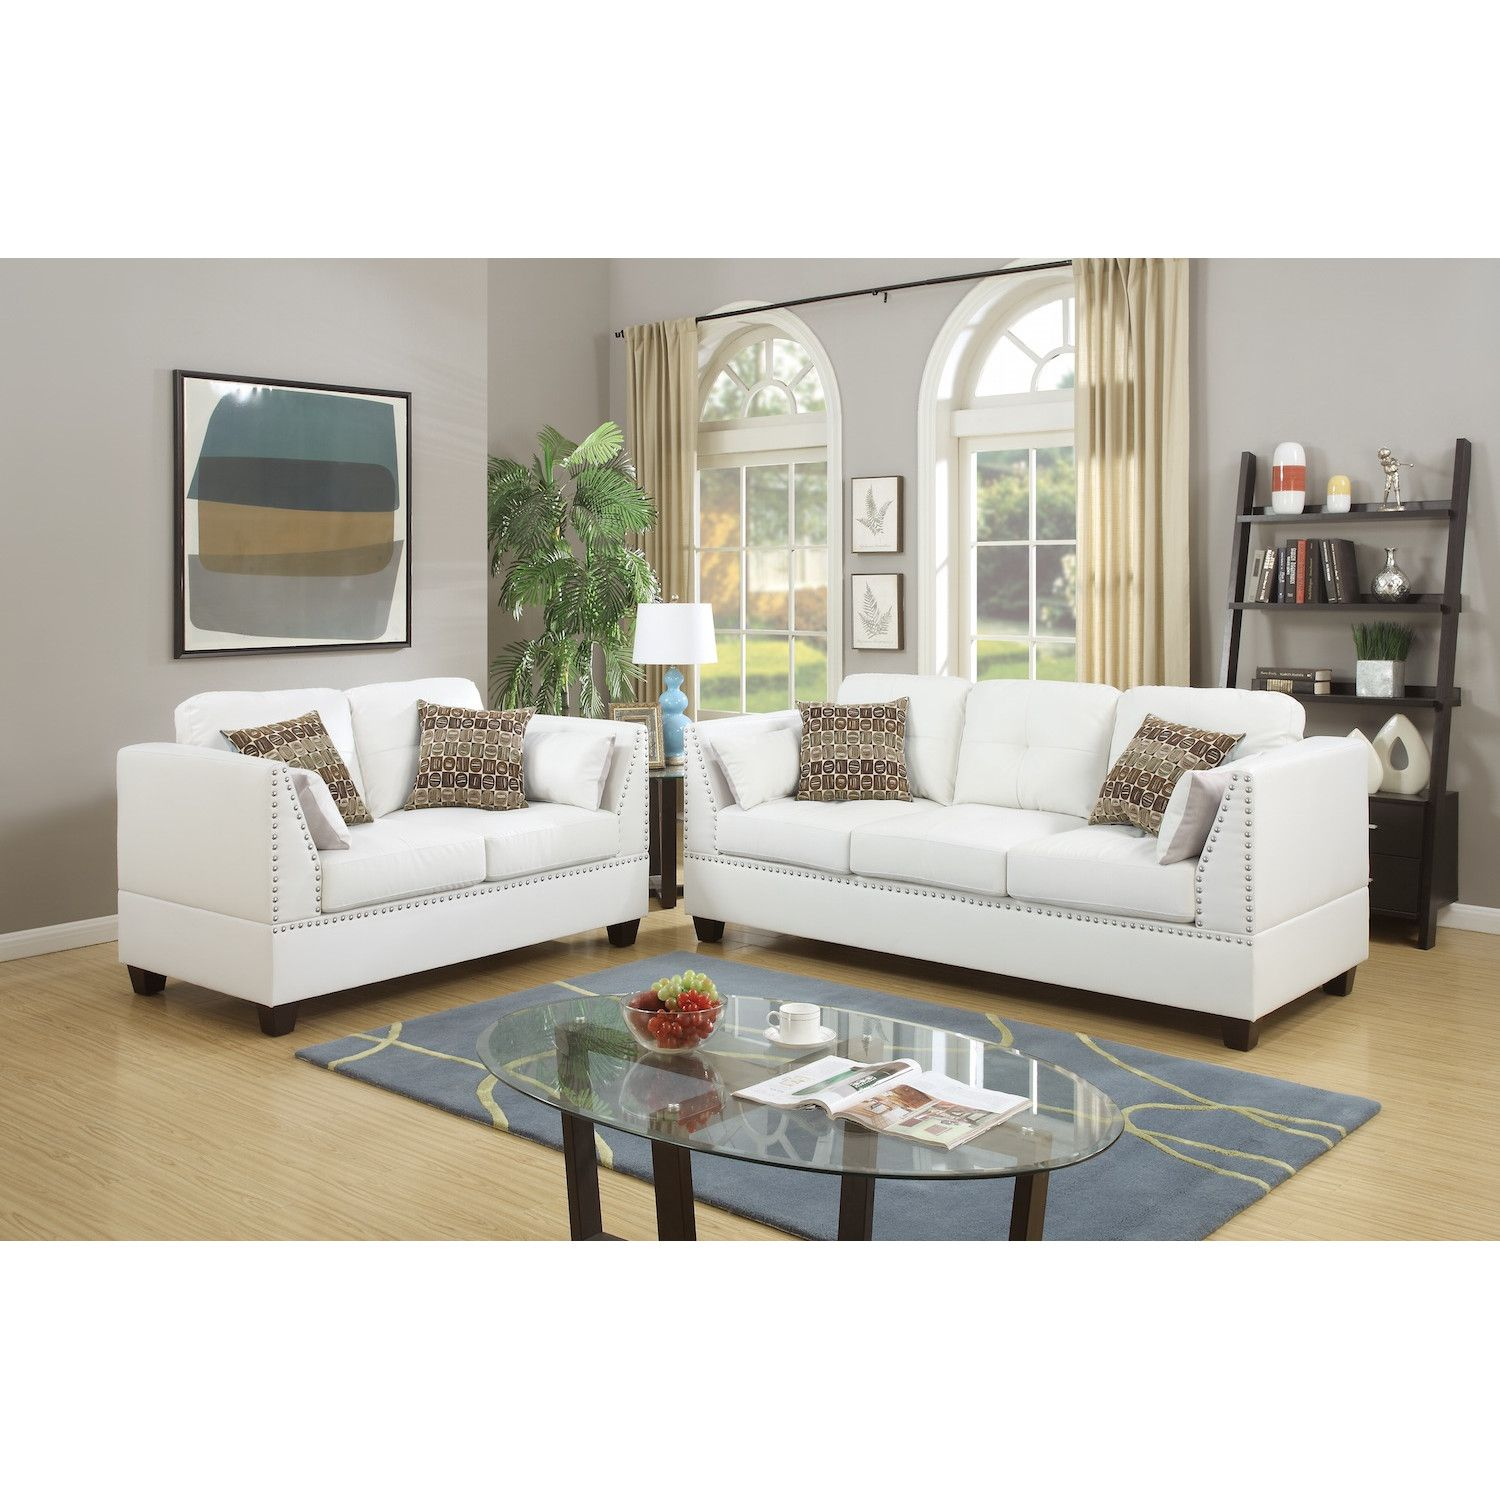 Shop Wayfair for Leather Sofas to match every style and budget ...